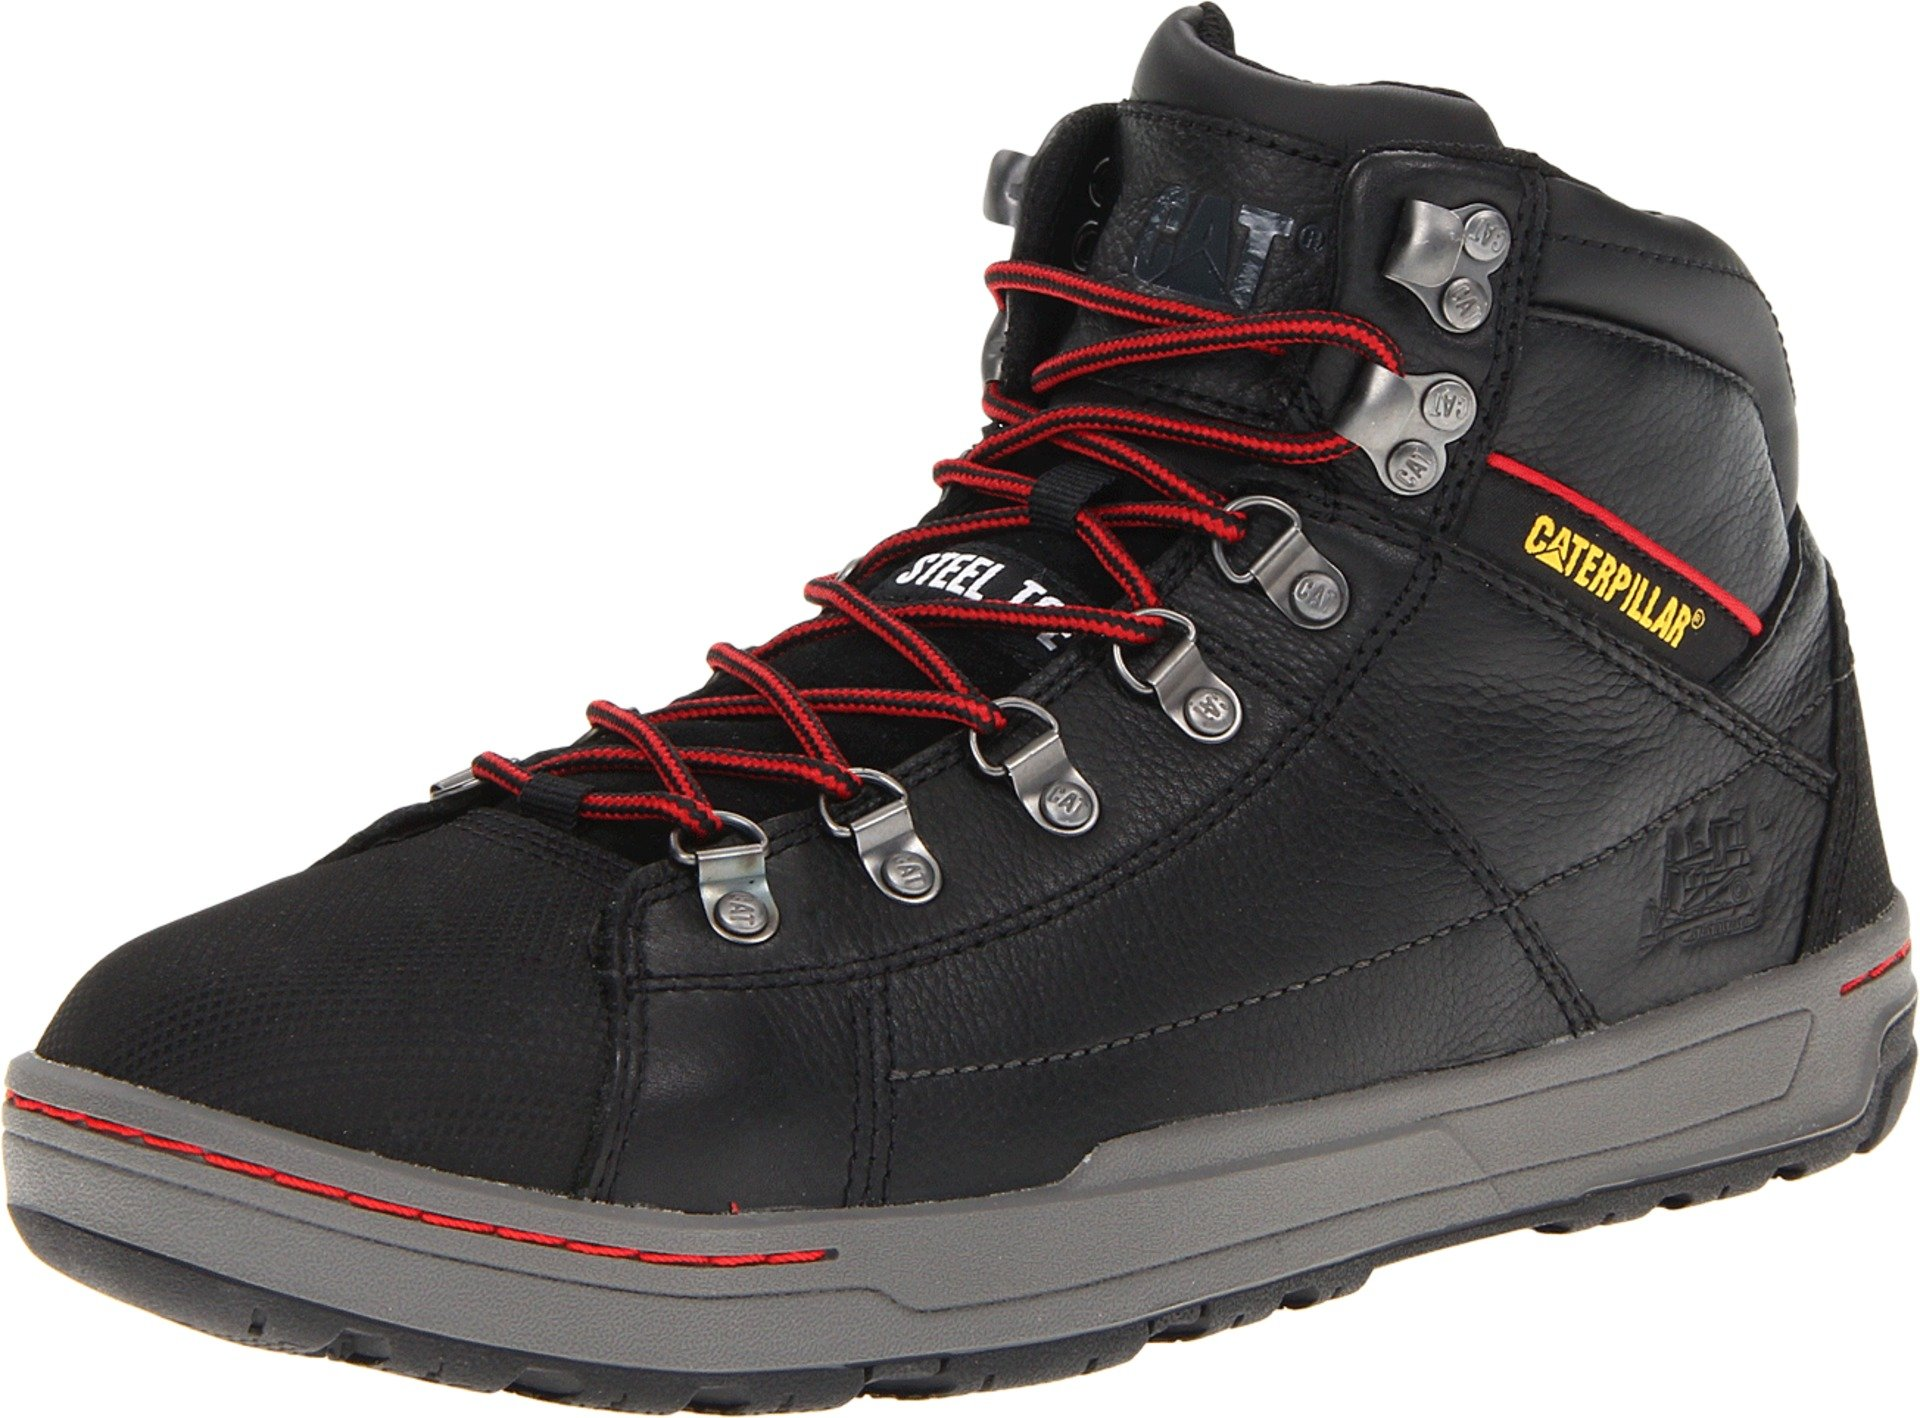 Caterpillar Men's Brode Hi Steel Toe Work Boot,Black,12 M US